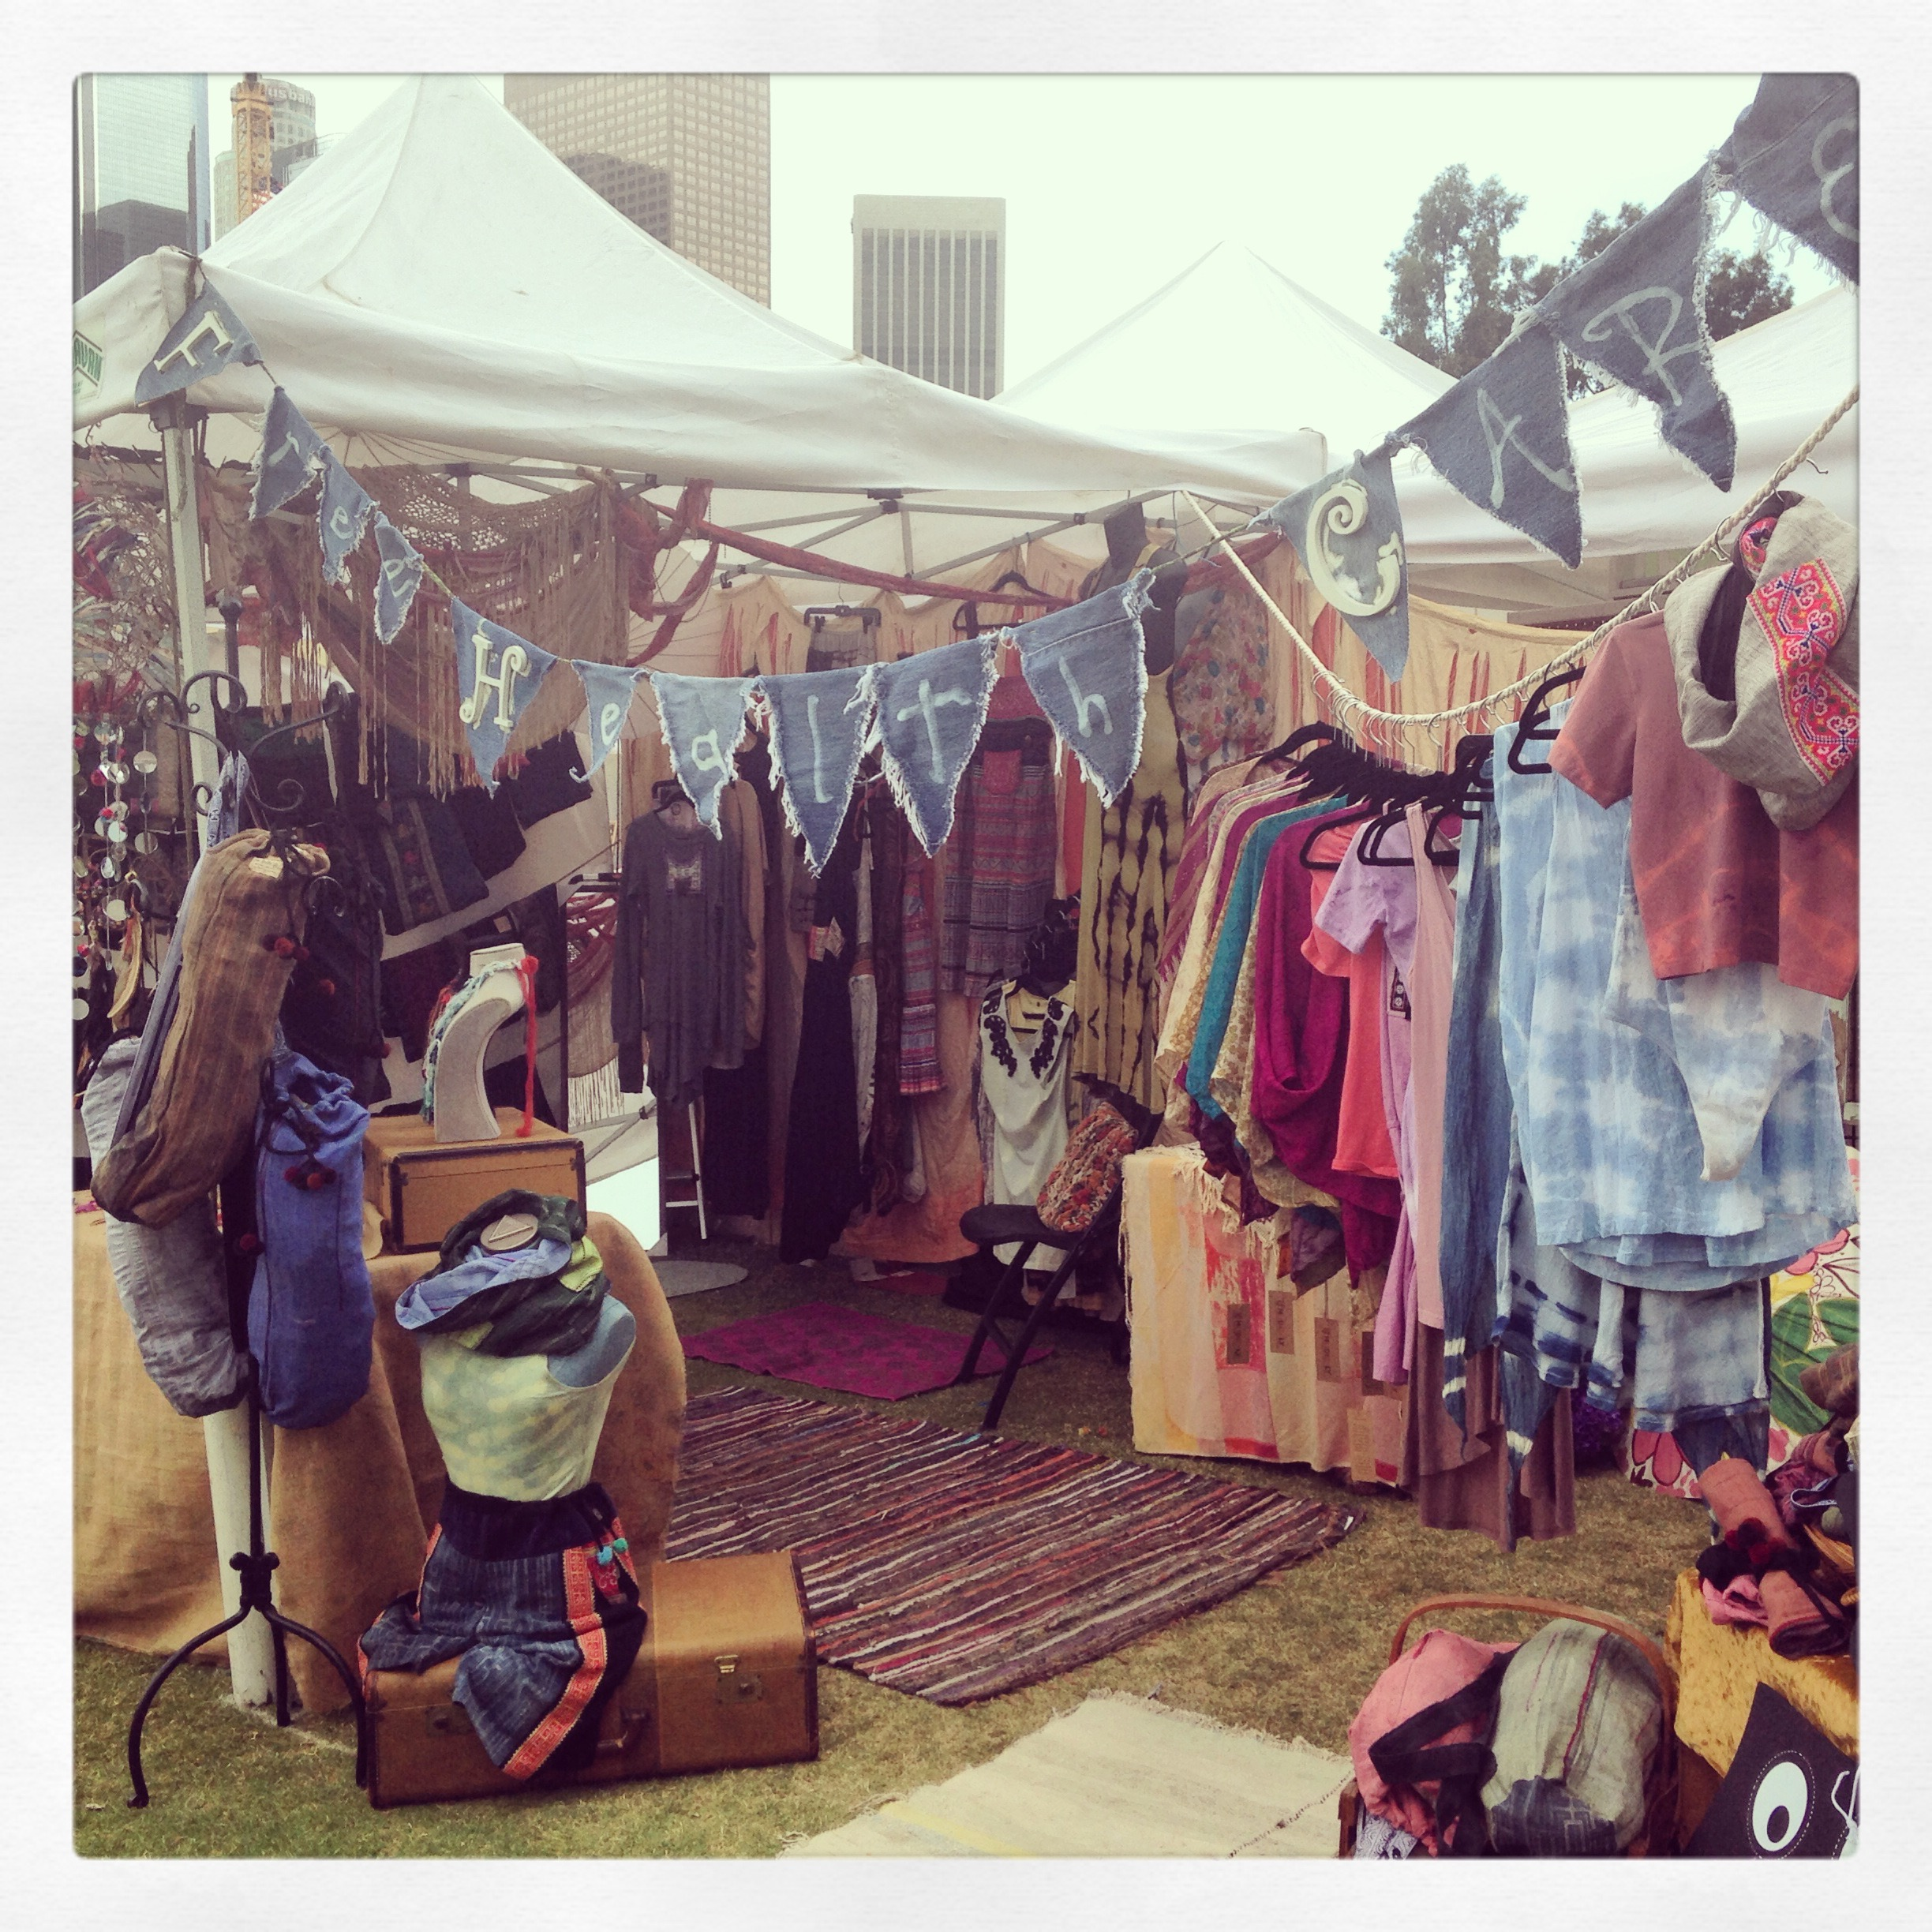 My line of clothing and textiles bought around the world. Occasionally, I work art festivals.